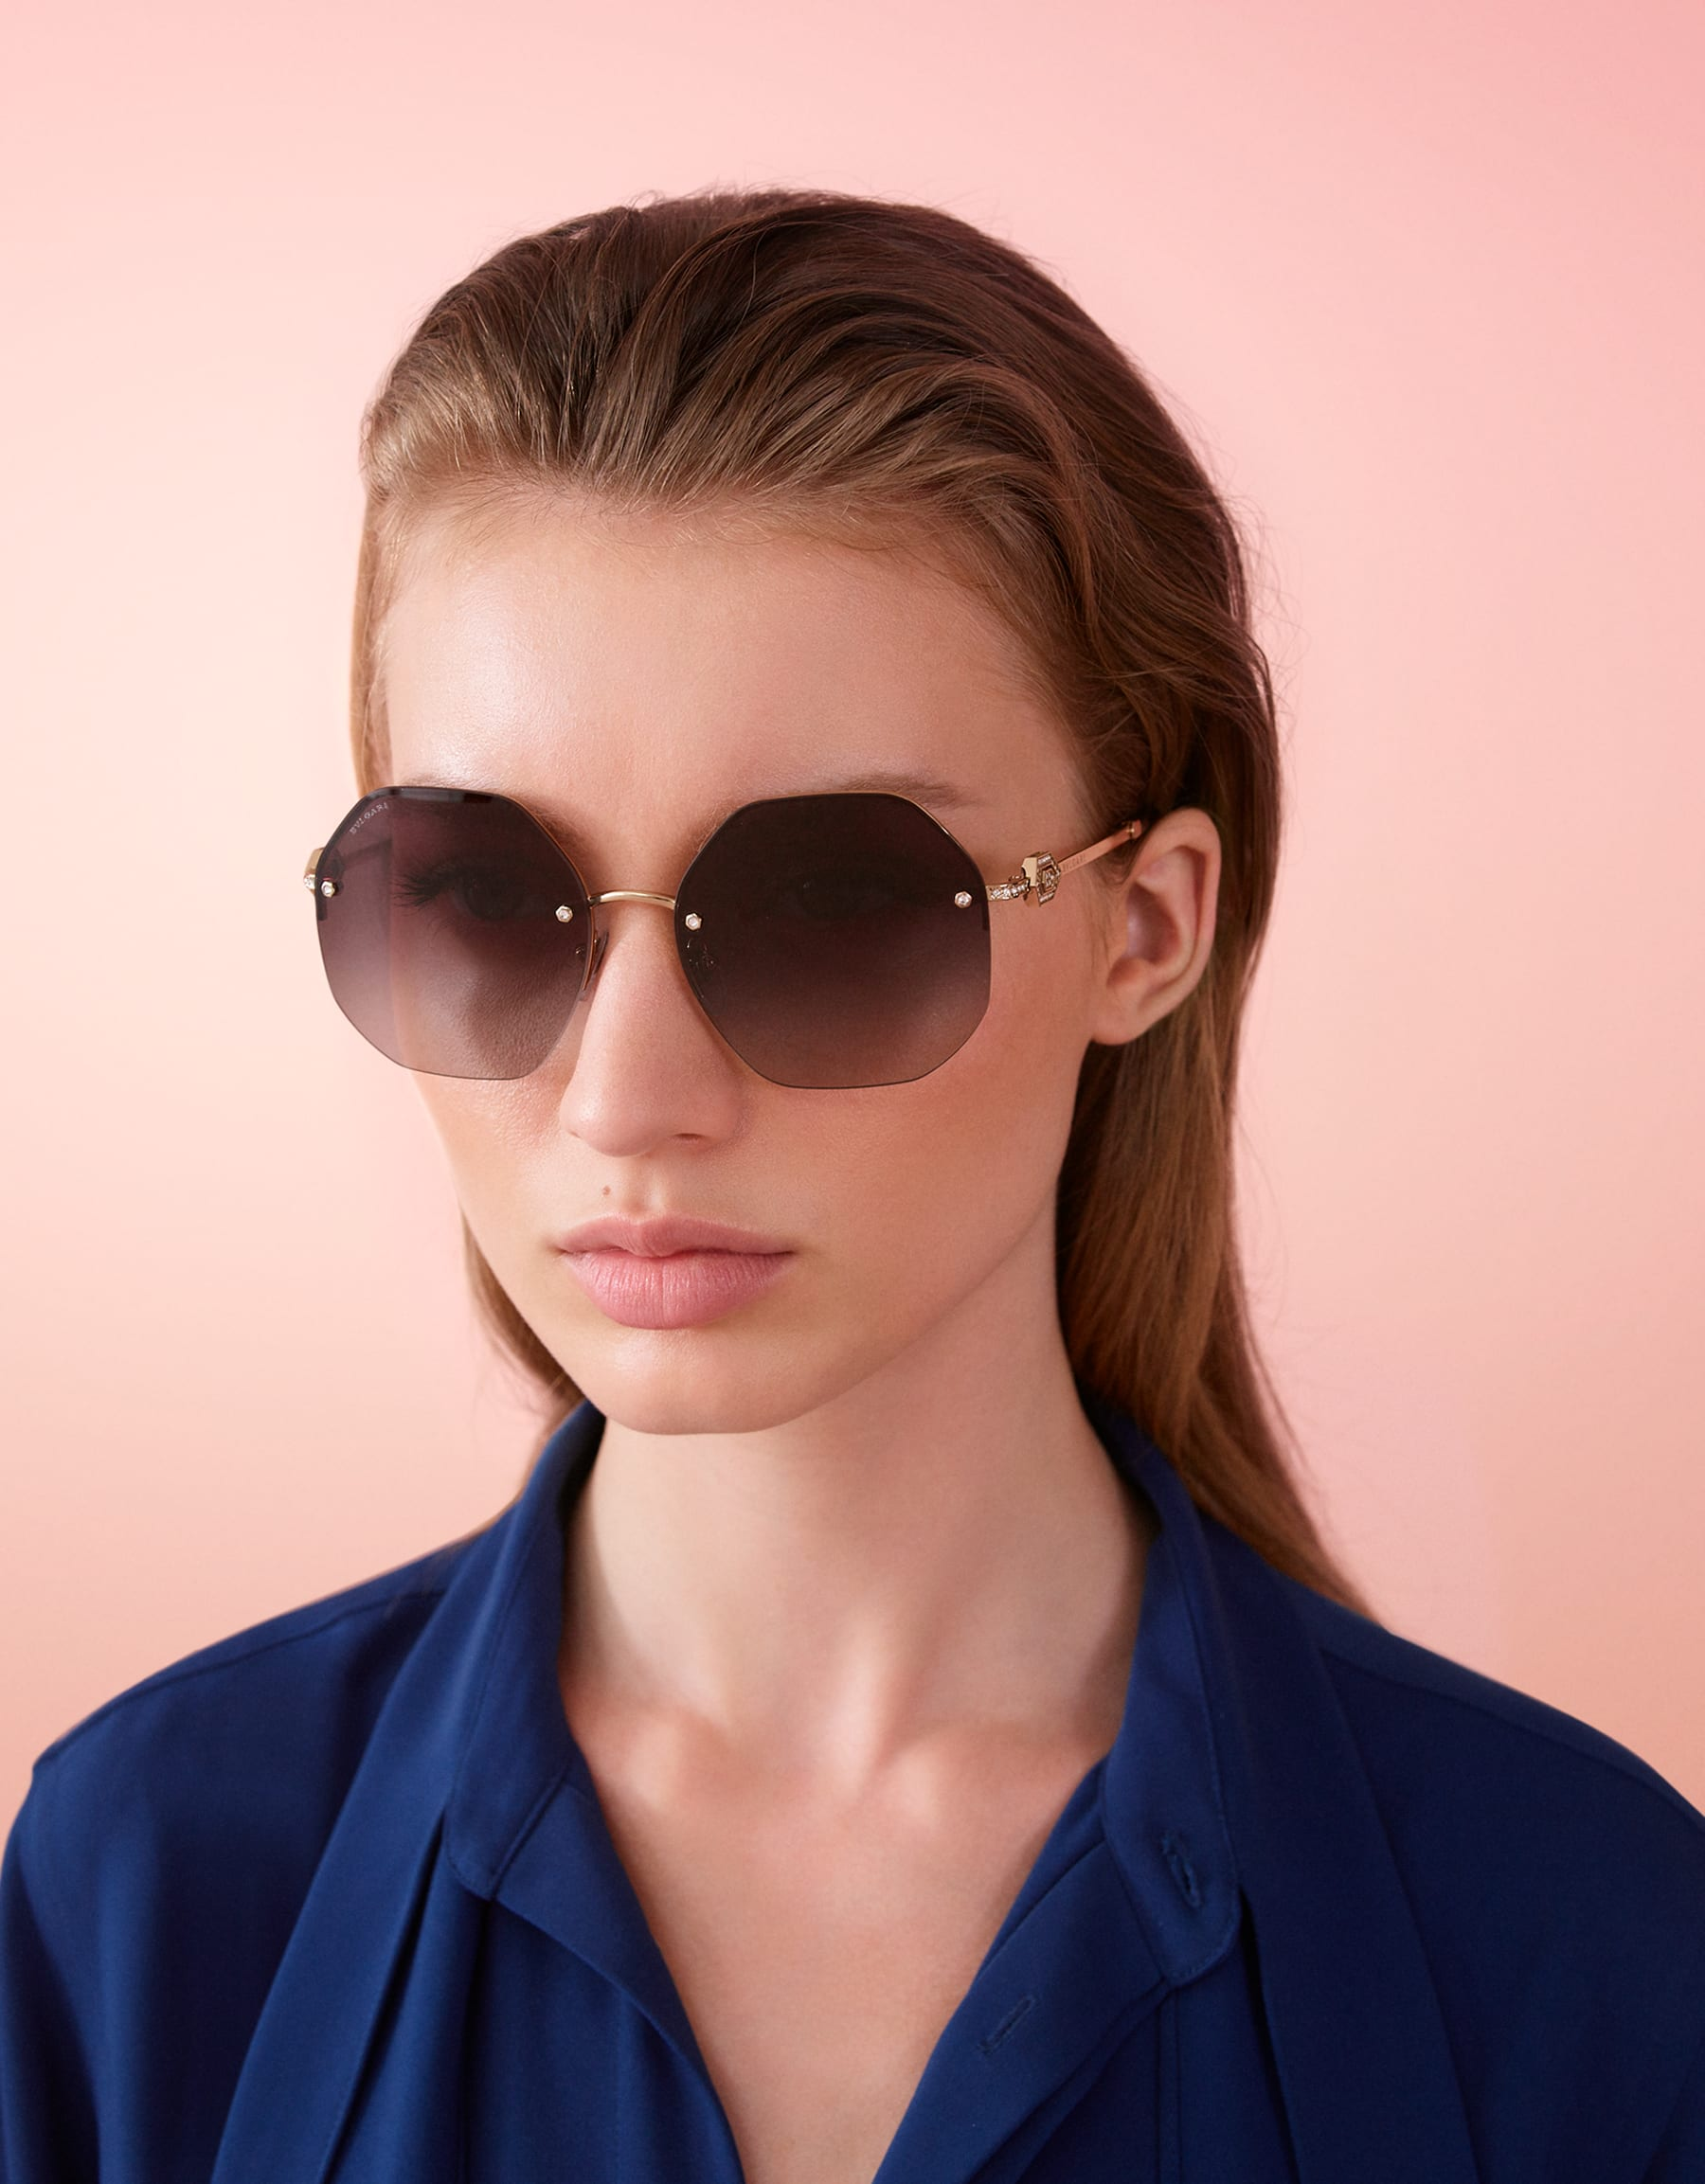 Bvlgari Serpenti oversized metal sunglasses with Serpenti openwork metal décor with crystals. 903851 image 3